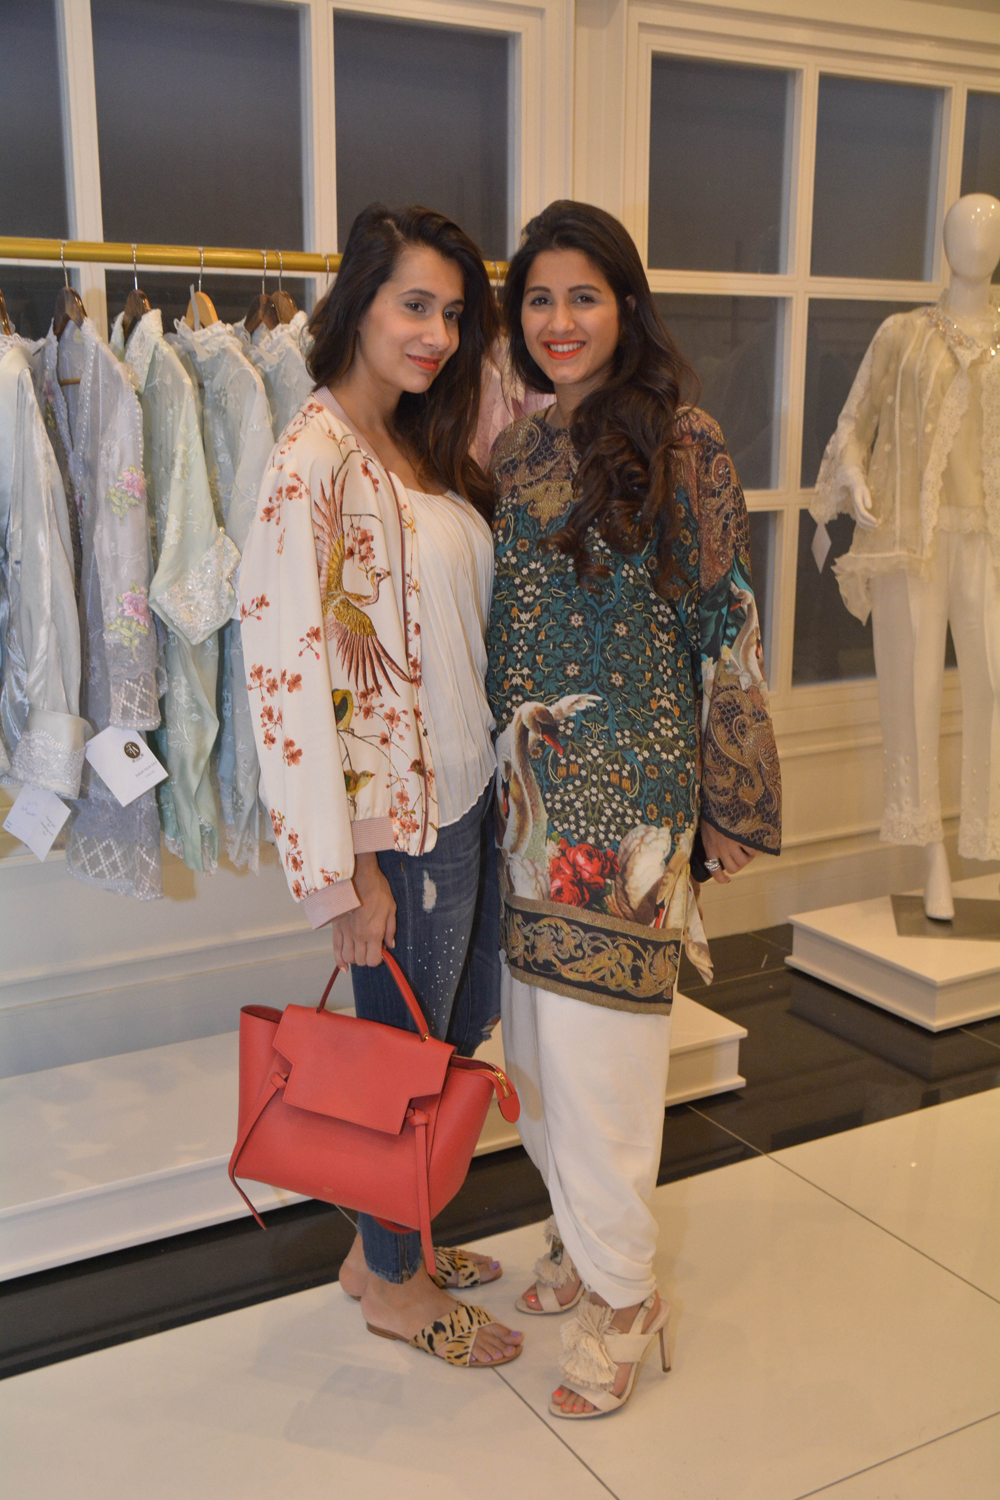 Ayesha Bari and Cyra Ali